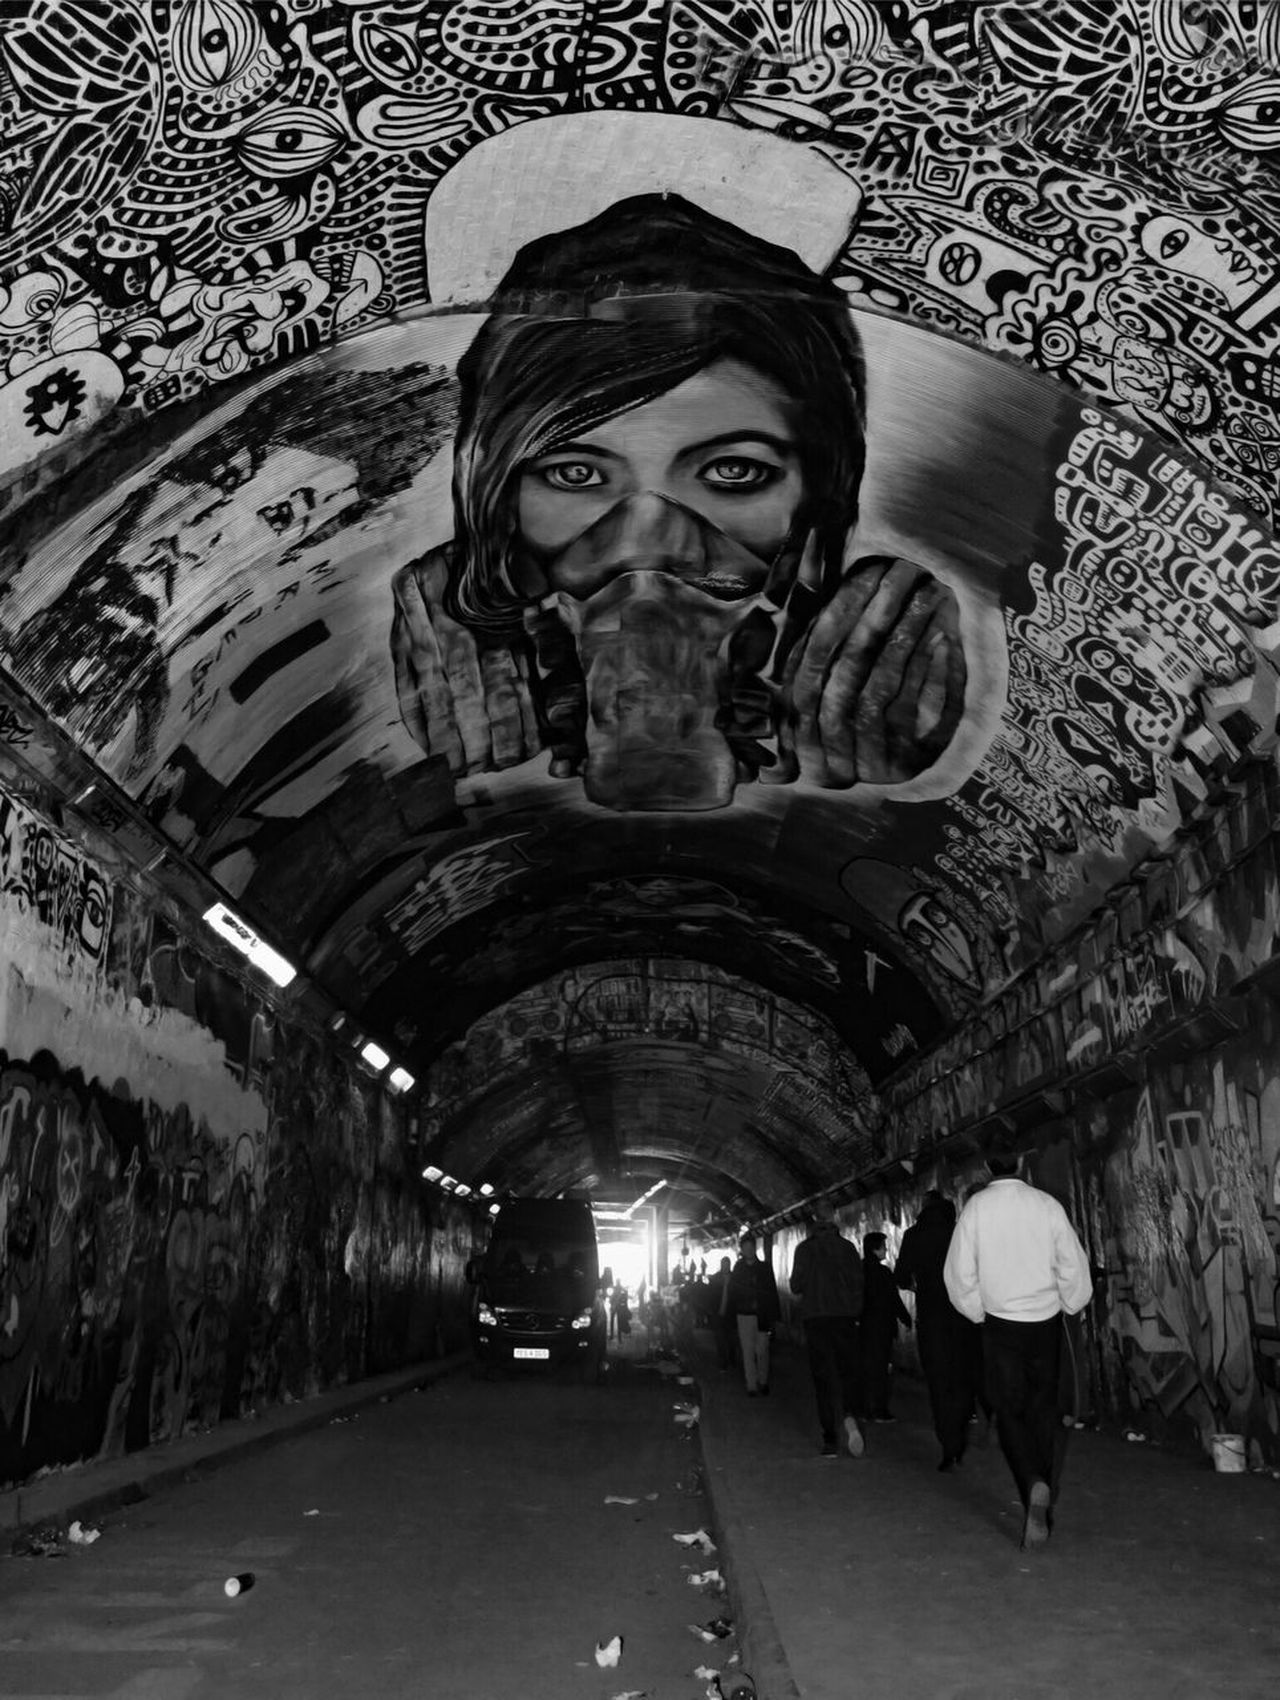 Tunnel Vision #2 ⁞ Real People Built Structure Architecture Streetphotography Street Photography Streetphoto_bw Streetart Graffiti Art Graffiti EyeEm Best Shots EyeEmBestPics Urbanphotography EyeEm Best Shots - Black + White Blackandwhite Photography Black&white London The Street Photographer - 2017 EyeEm Awards The Architect - 2017 EyeEm Awards Art Is Everywhere Eyem Gallery Eye4photography  The Purist (no Edit, No Filter) Cityscape From My Point Of View Eyeem Collection